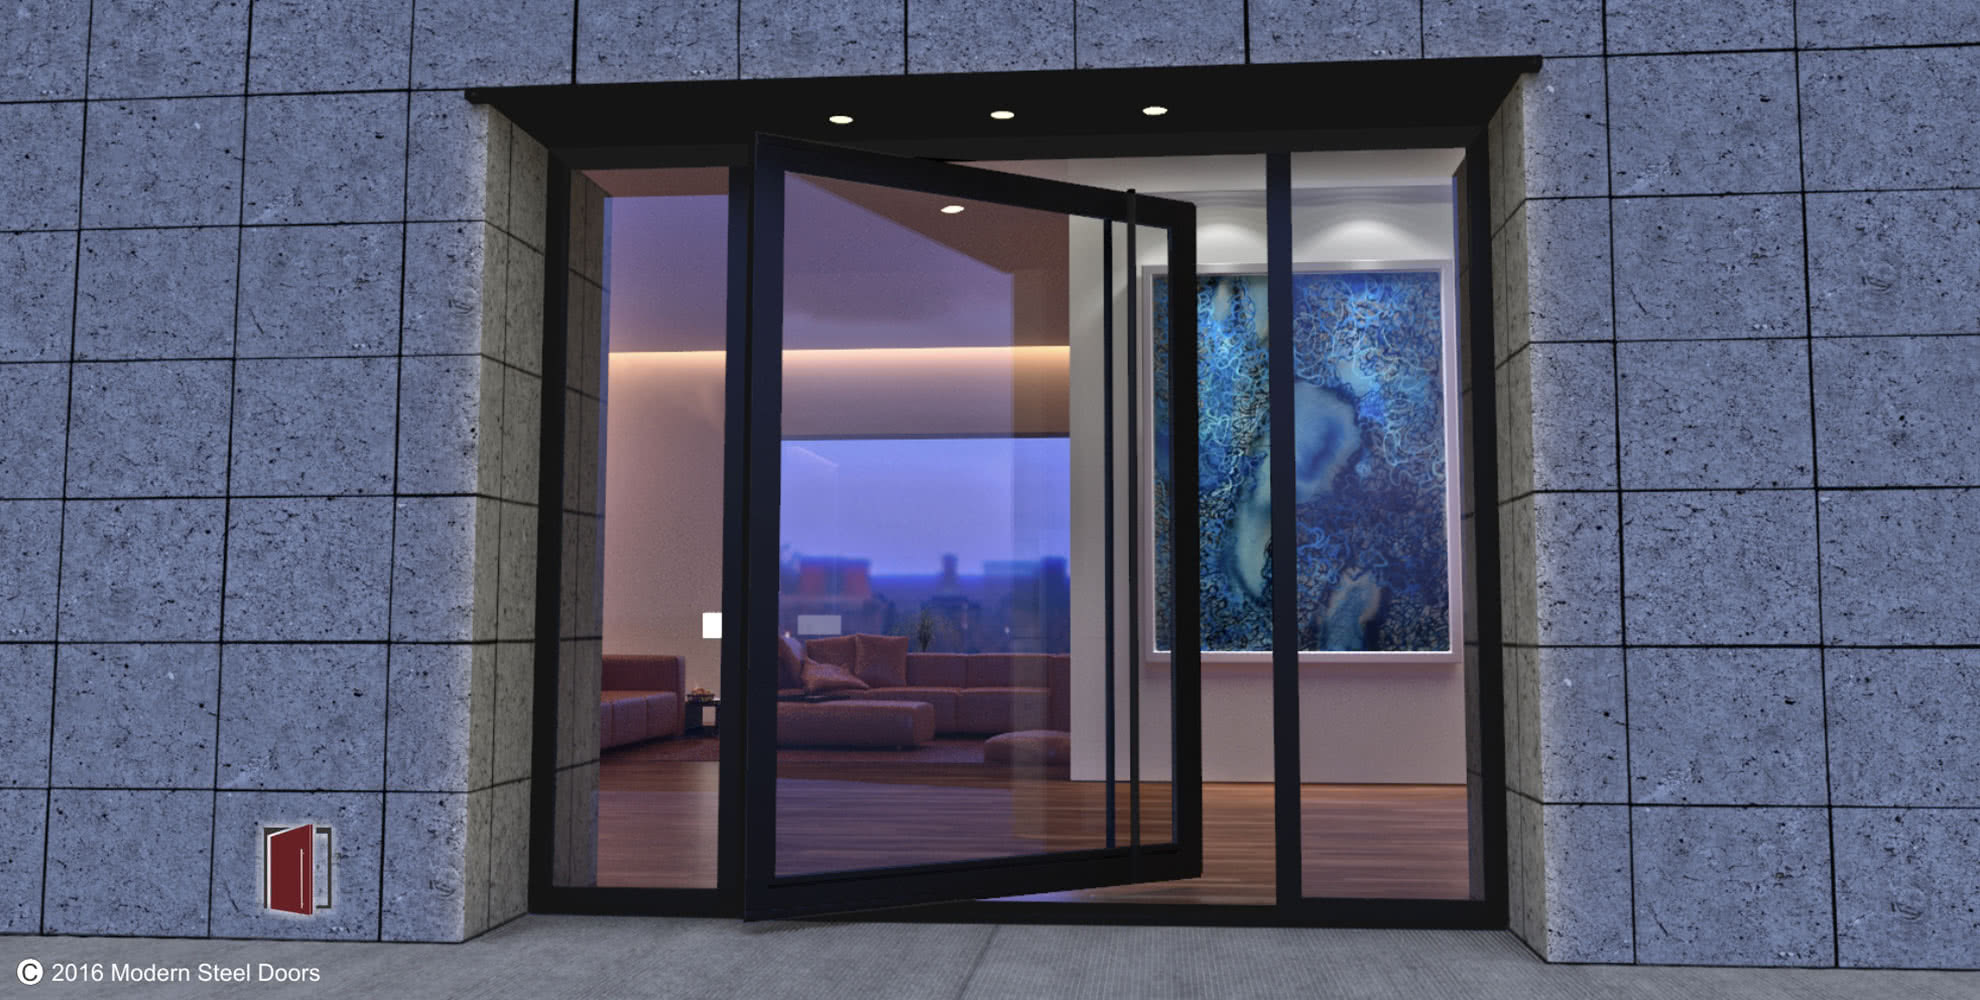 Modern steel doors custom pivot doors glass doors for Exterior entry doors with glass